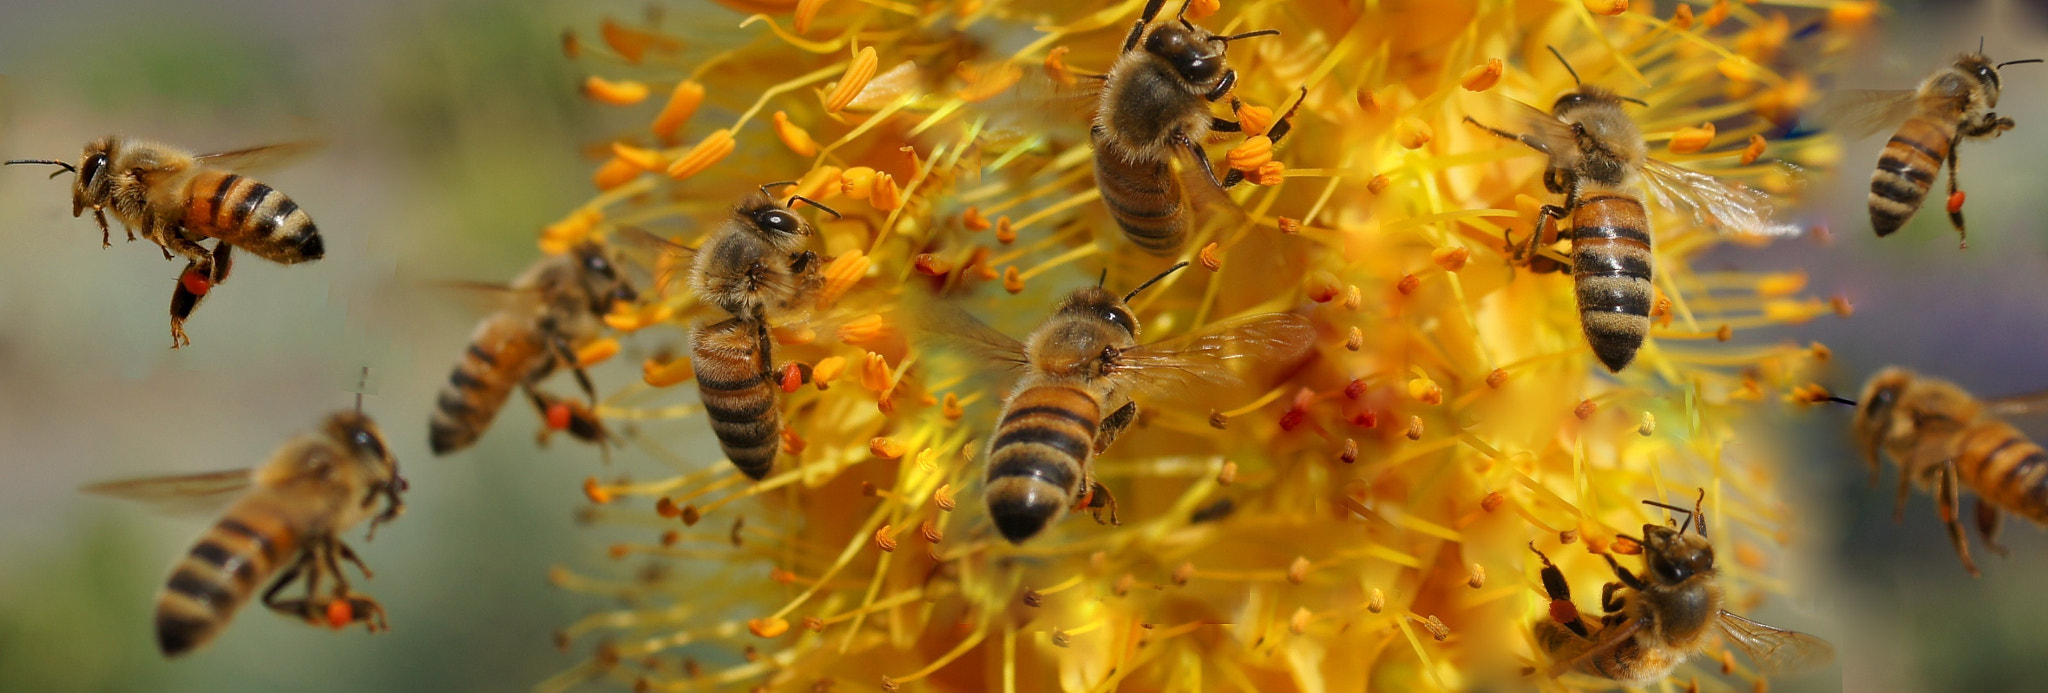 Photograph My Honey Bees by Betsy Seeton on 500px